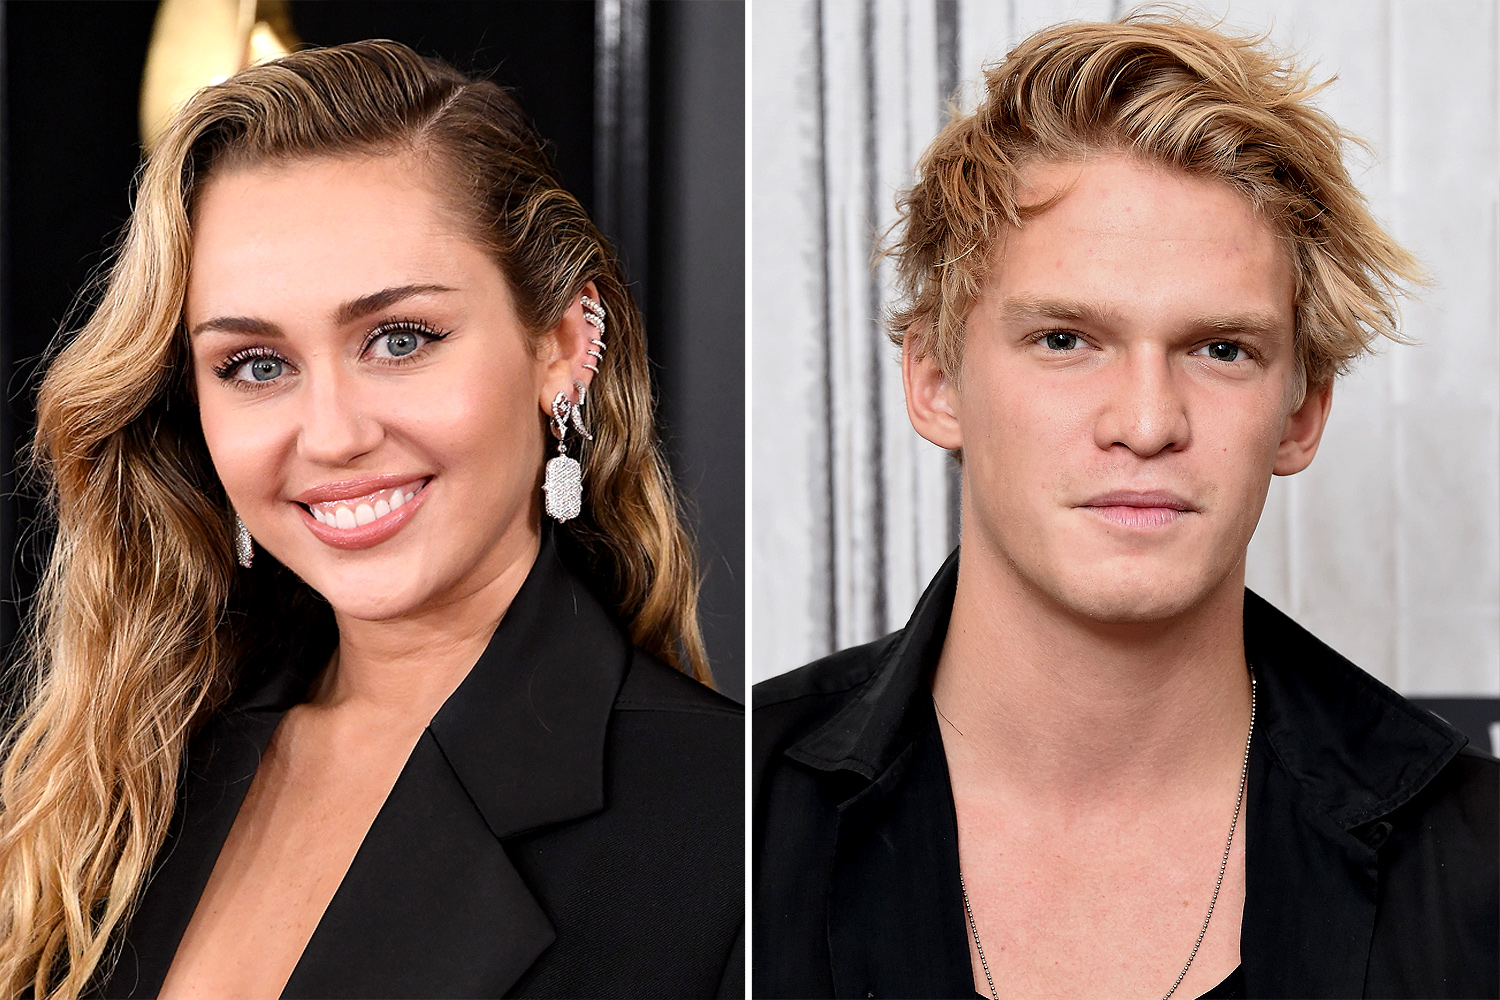 """cody-simpson-comes-to-gf-miley-cyrus-defense-after-backlash-over-comments-suggesting-women-can-turn-gay-because-of-sucky-men"""